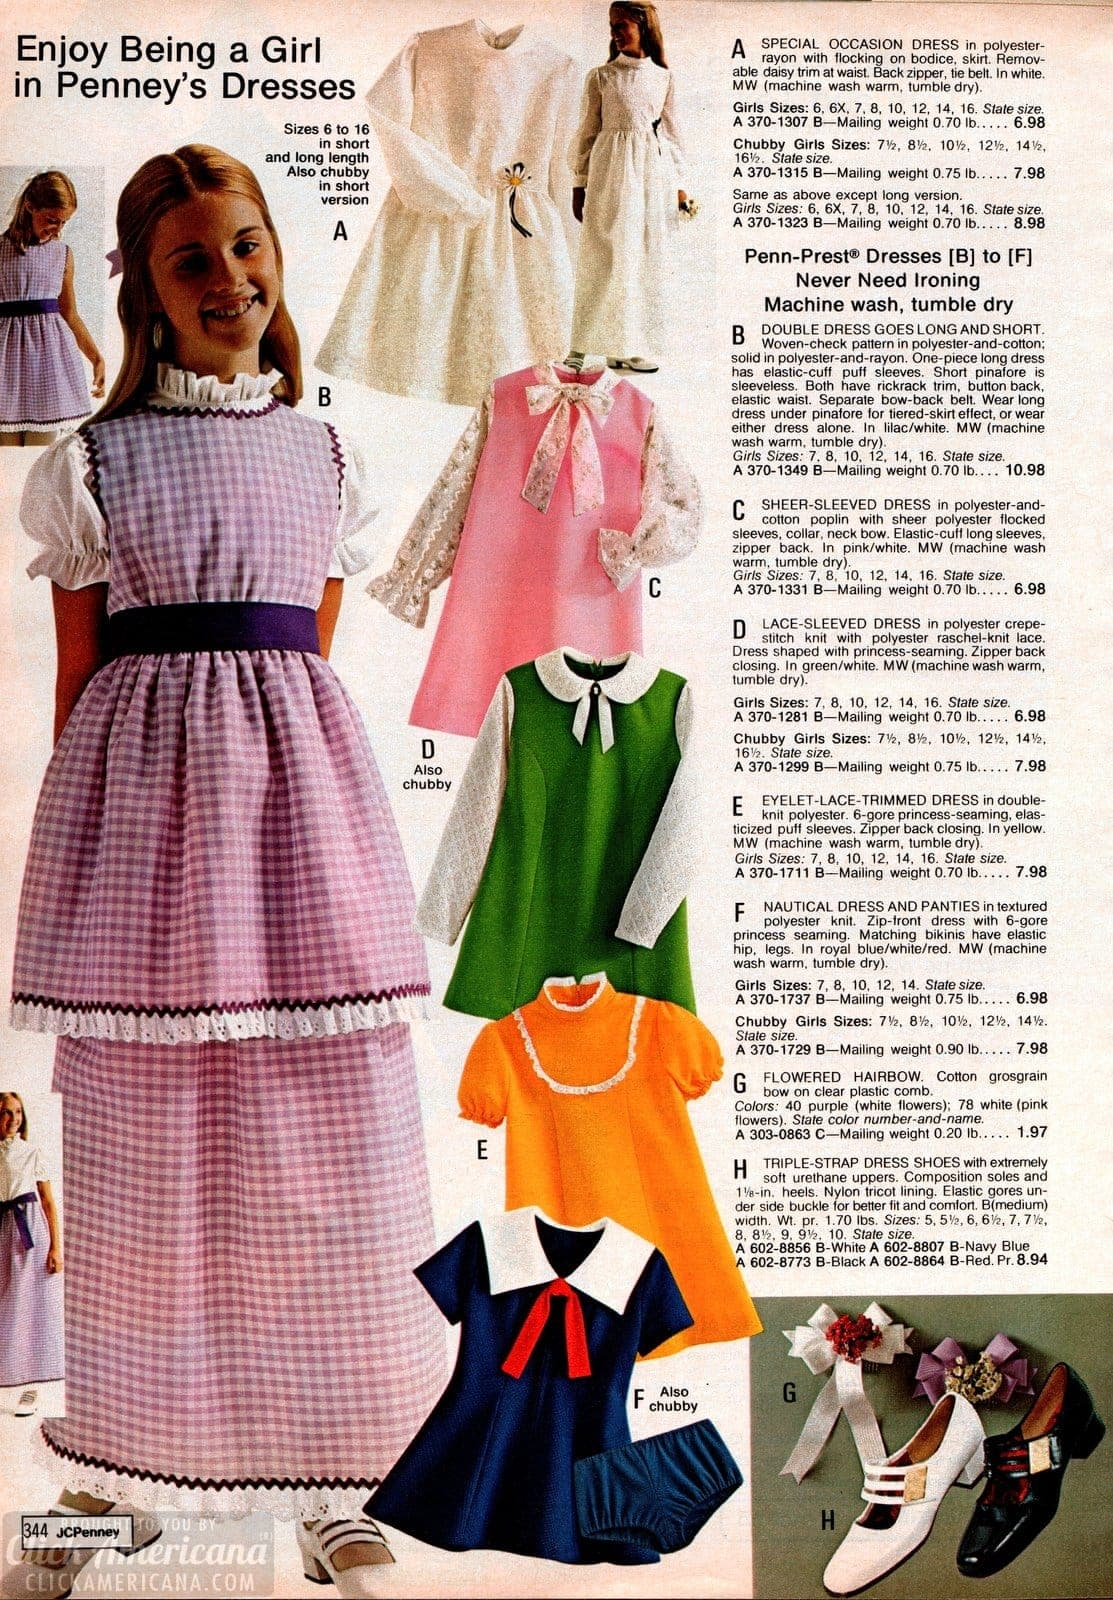 Dresses for girls from the 1973 JC Penney catalog